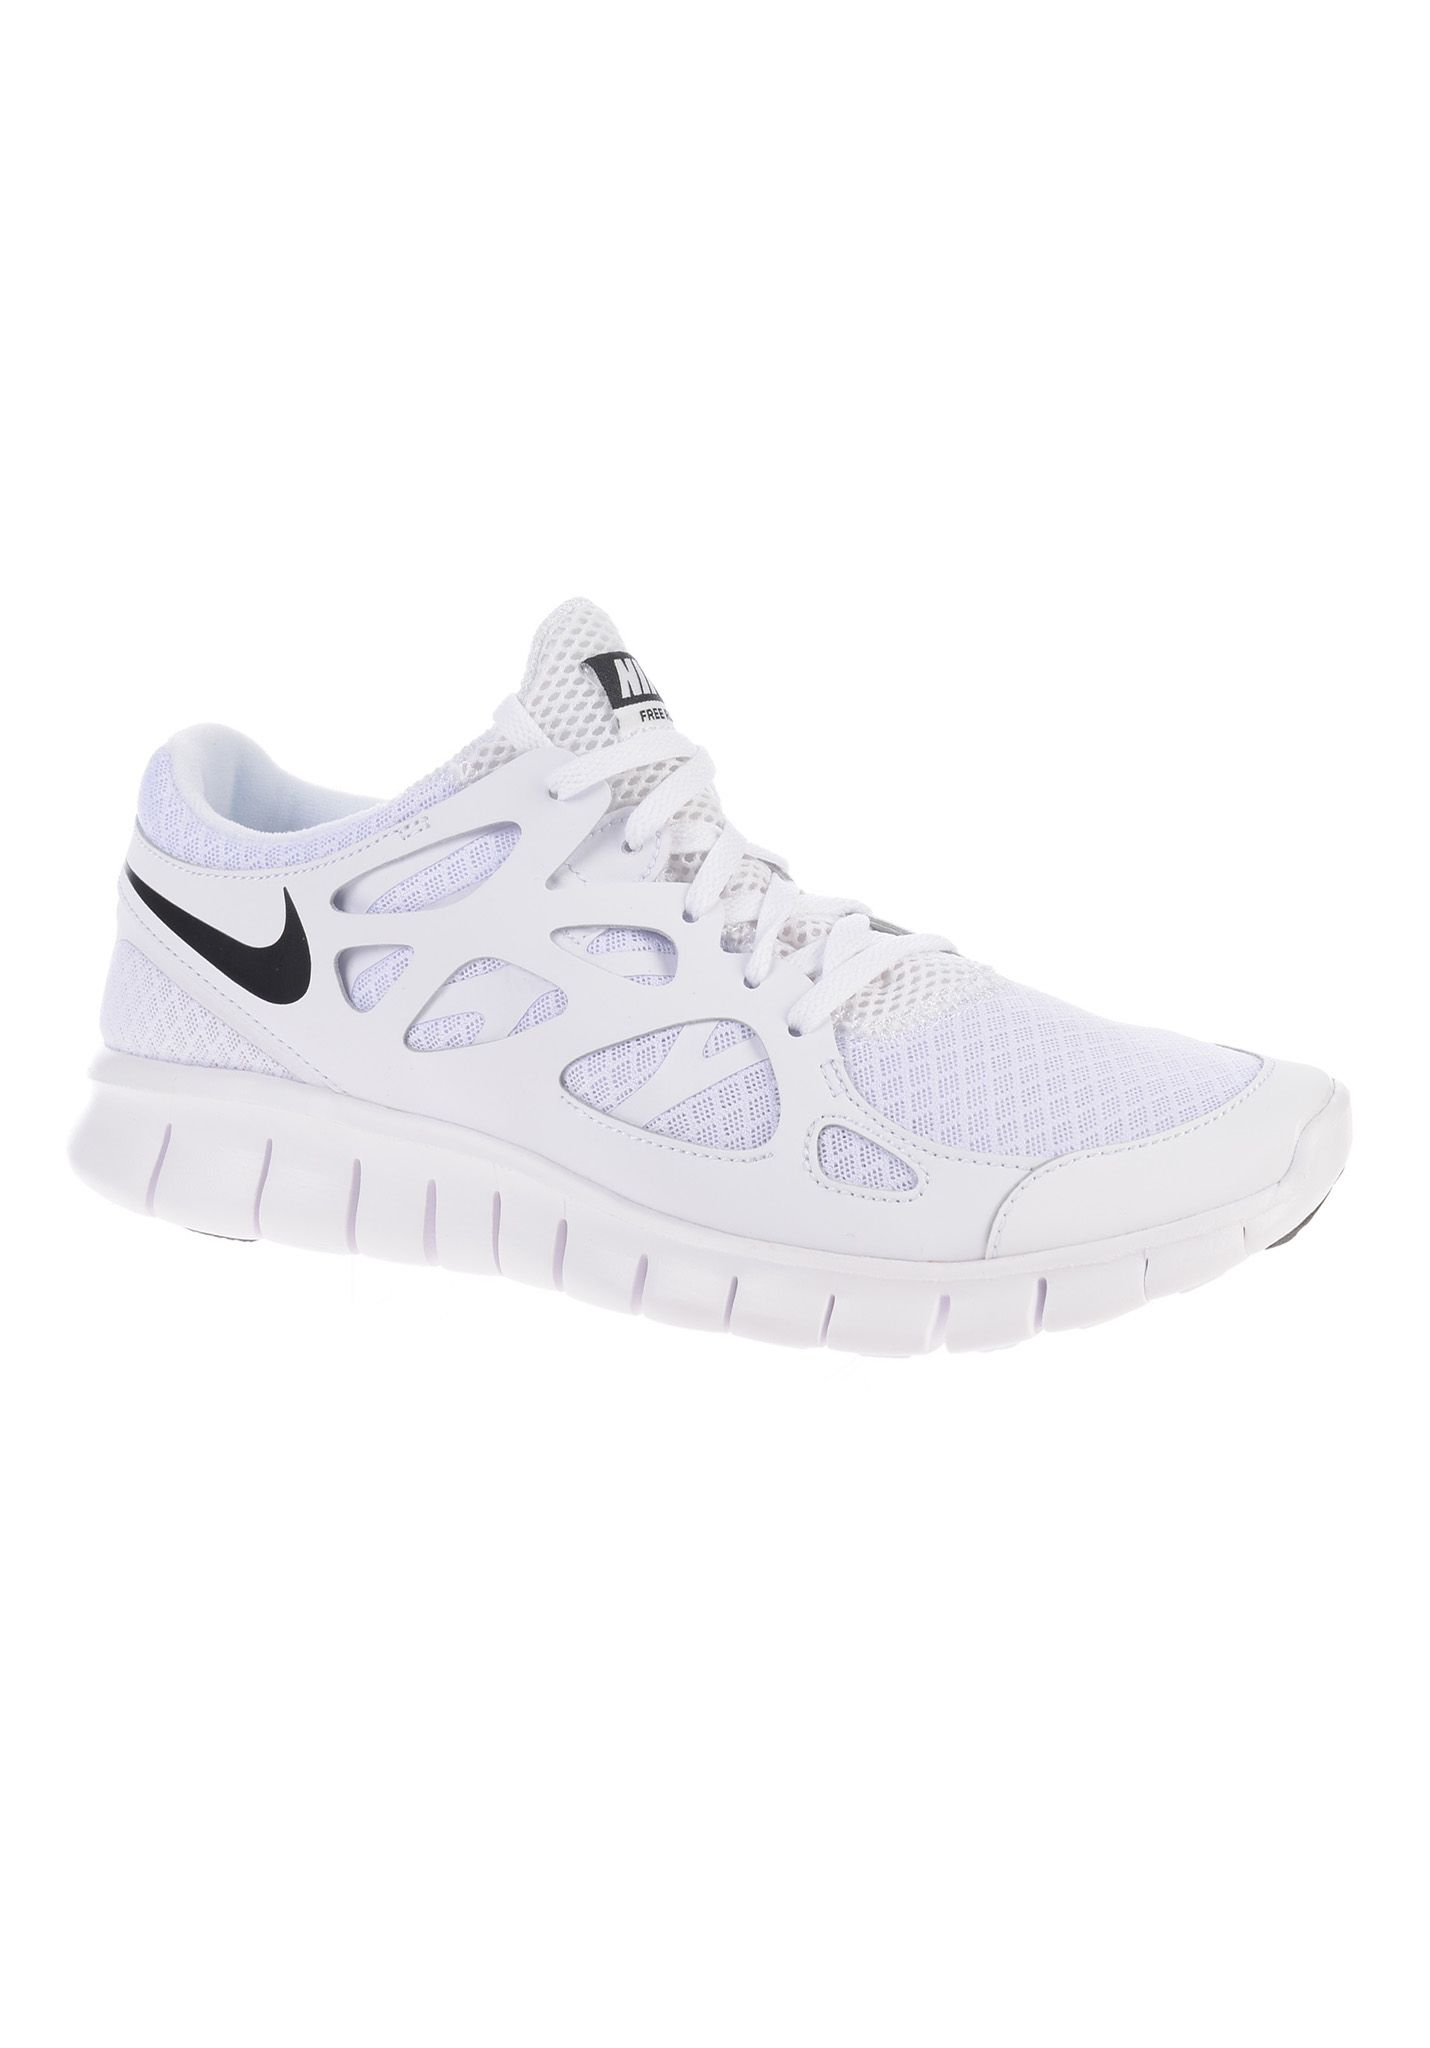 the latest 60a1d 630c4 ... new arrivals nike sportswear free run 2 nsw sneaker für herren weiß  planet sports 9438b 23cb2